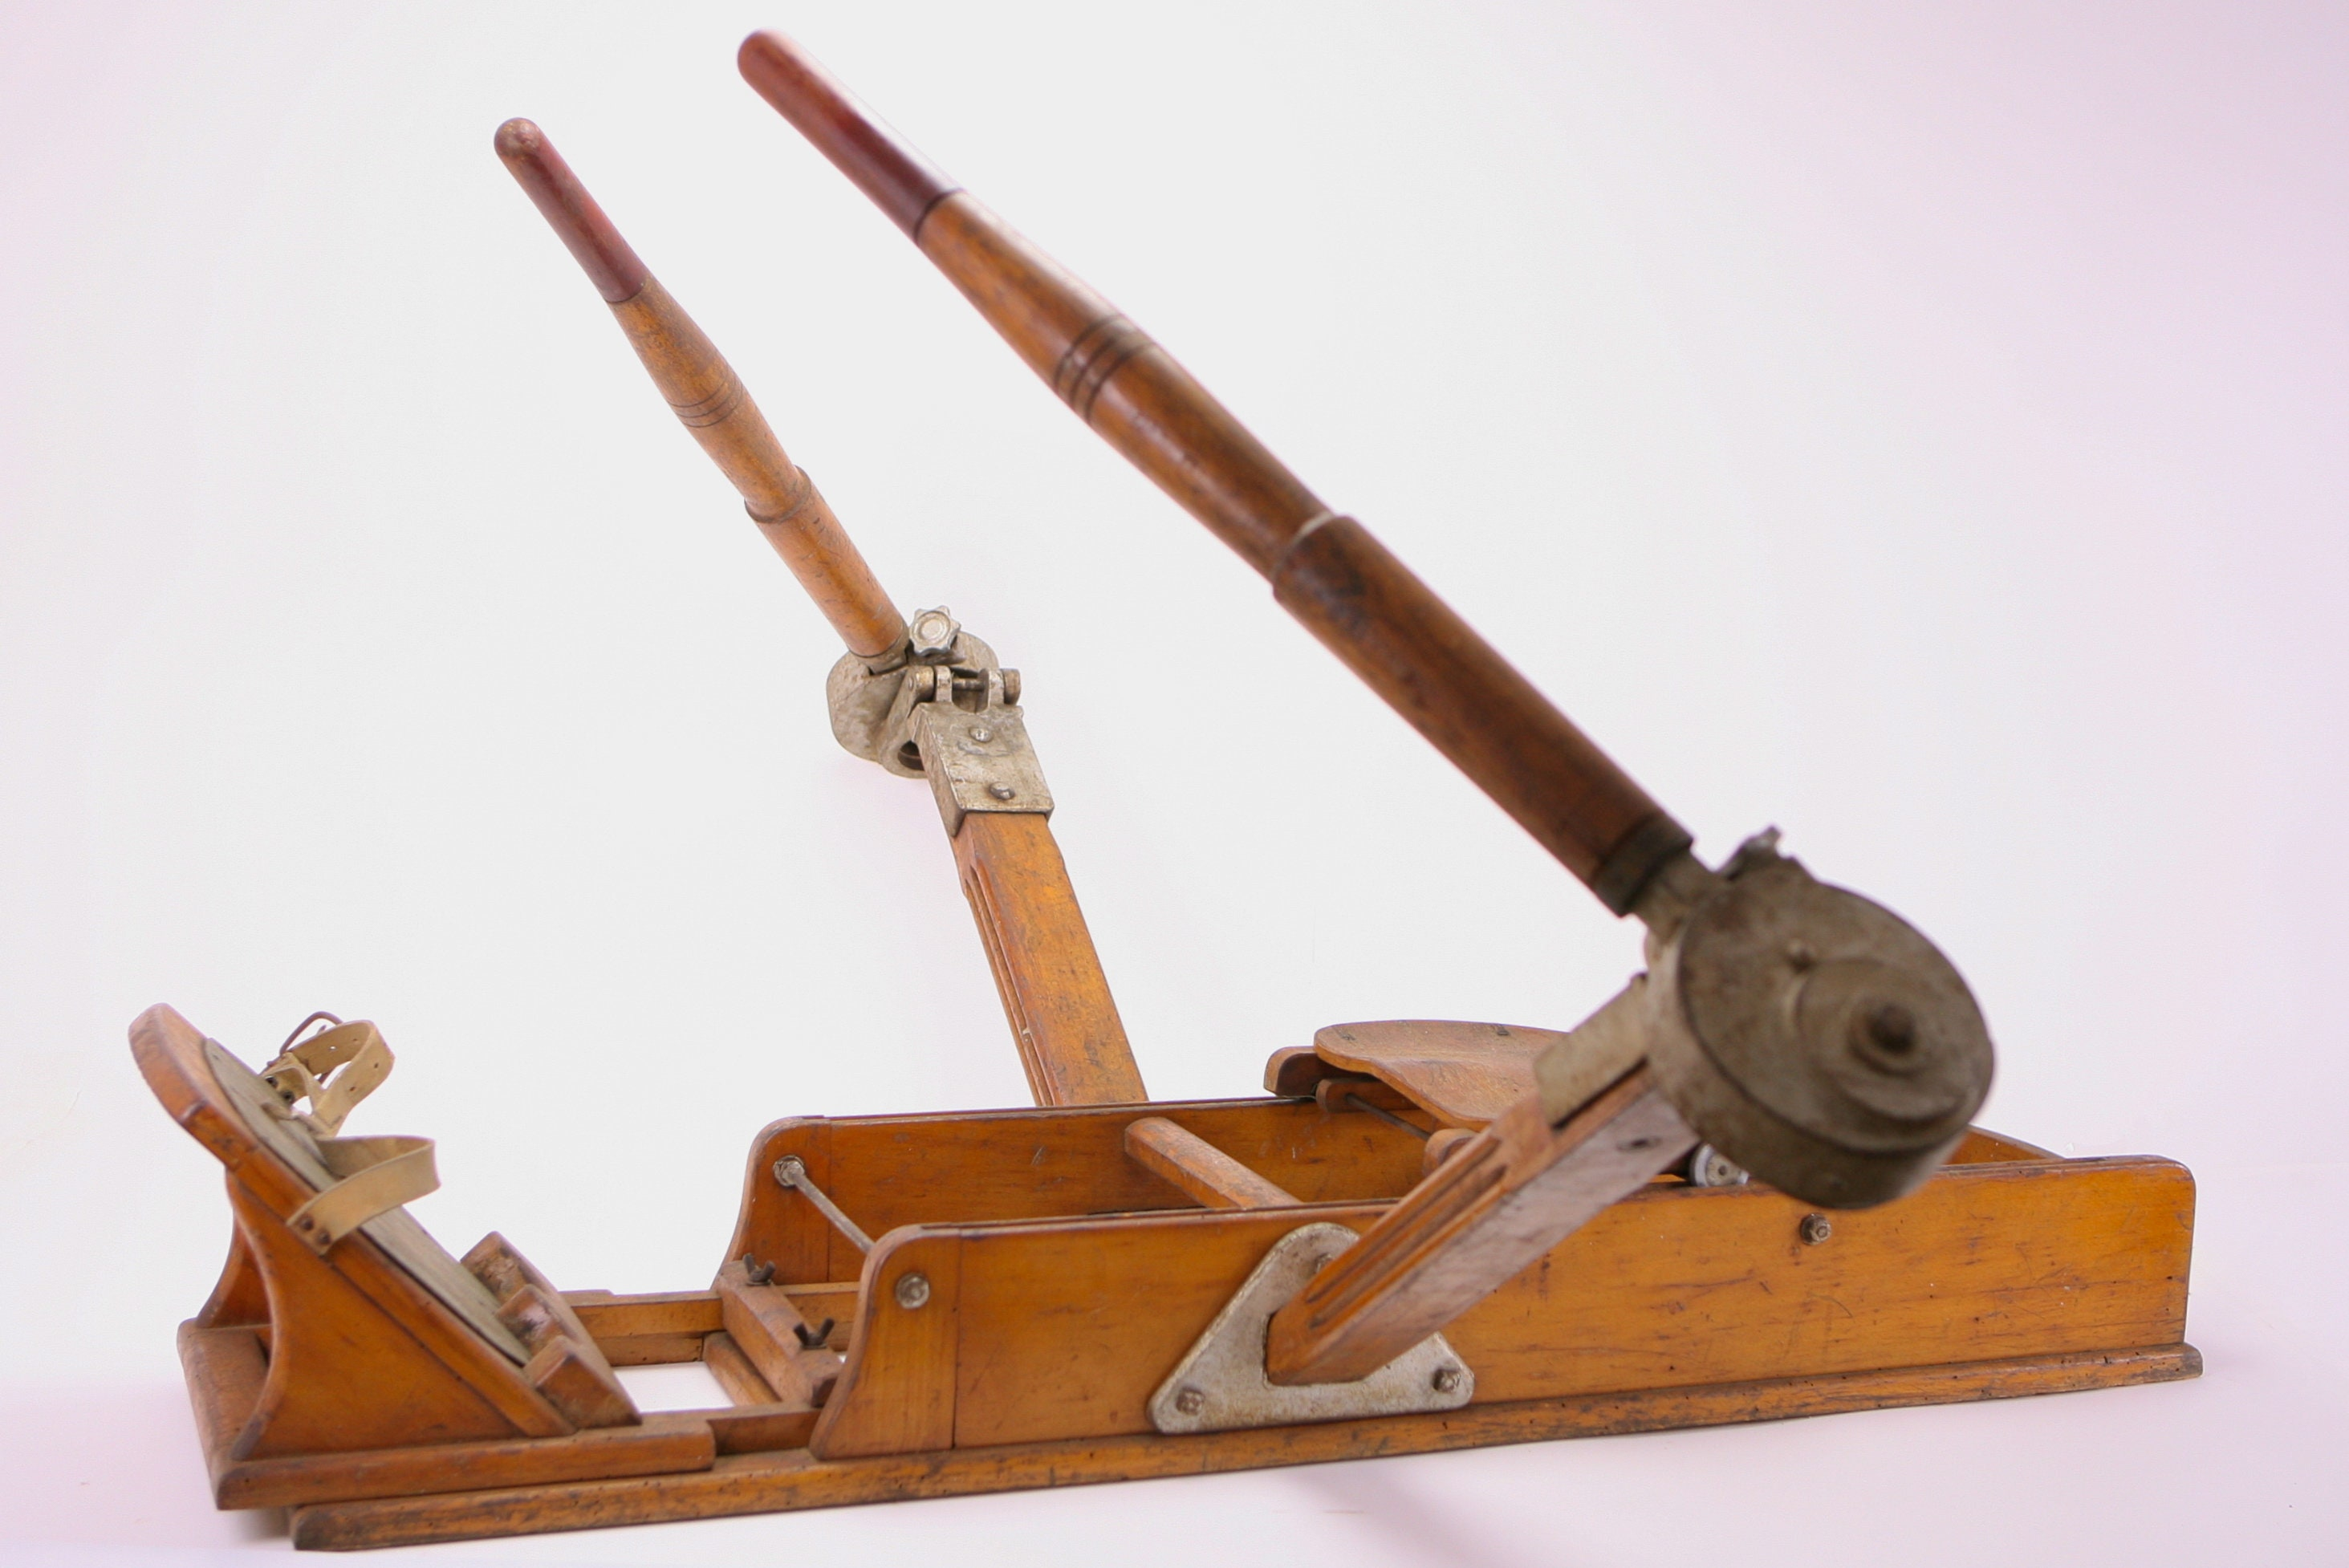 Vintage Lamborghini Italian Wooden Rowing Machine 1940s Free Shipping